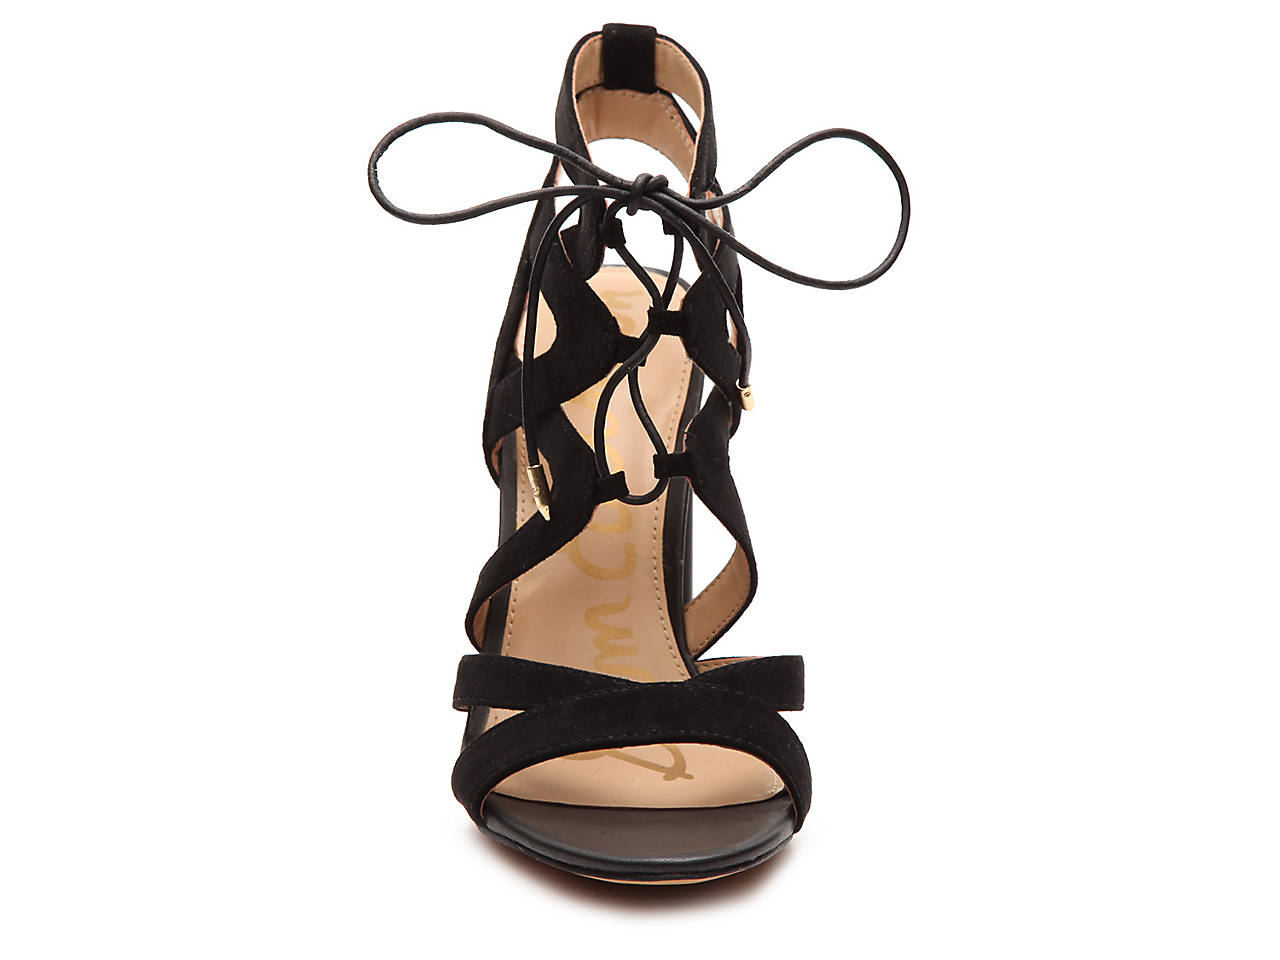 5b59f303289a7c Sam Edelman Yardley Sandal Women s Shoes